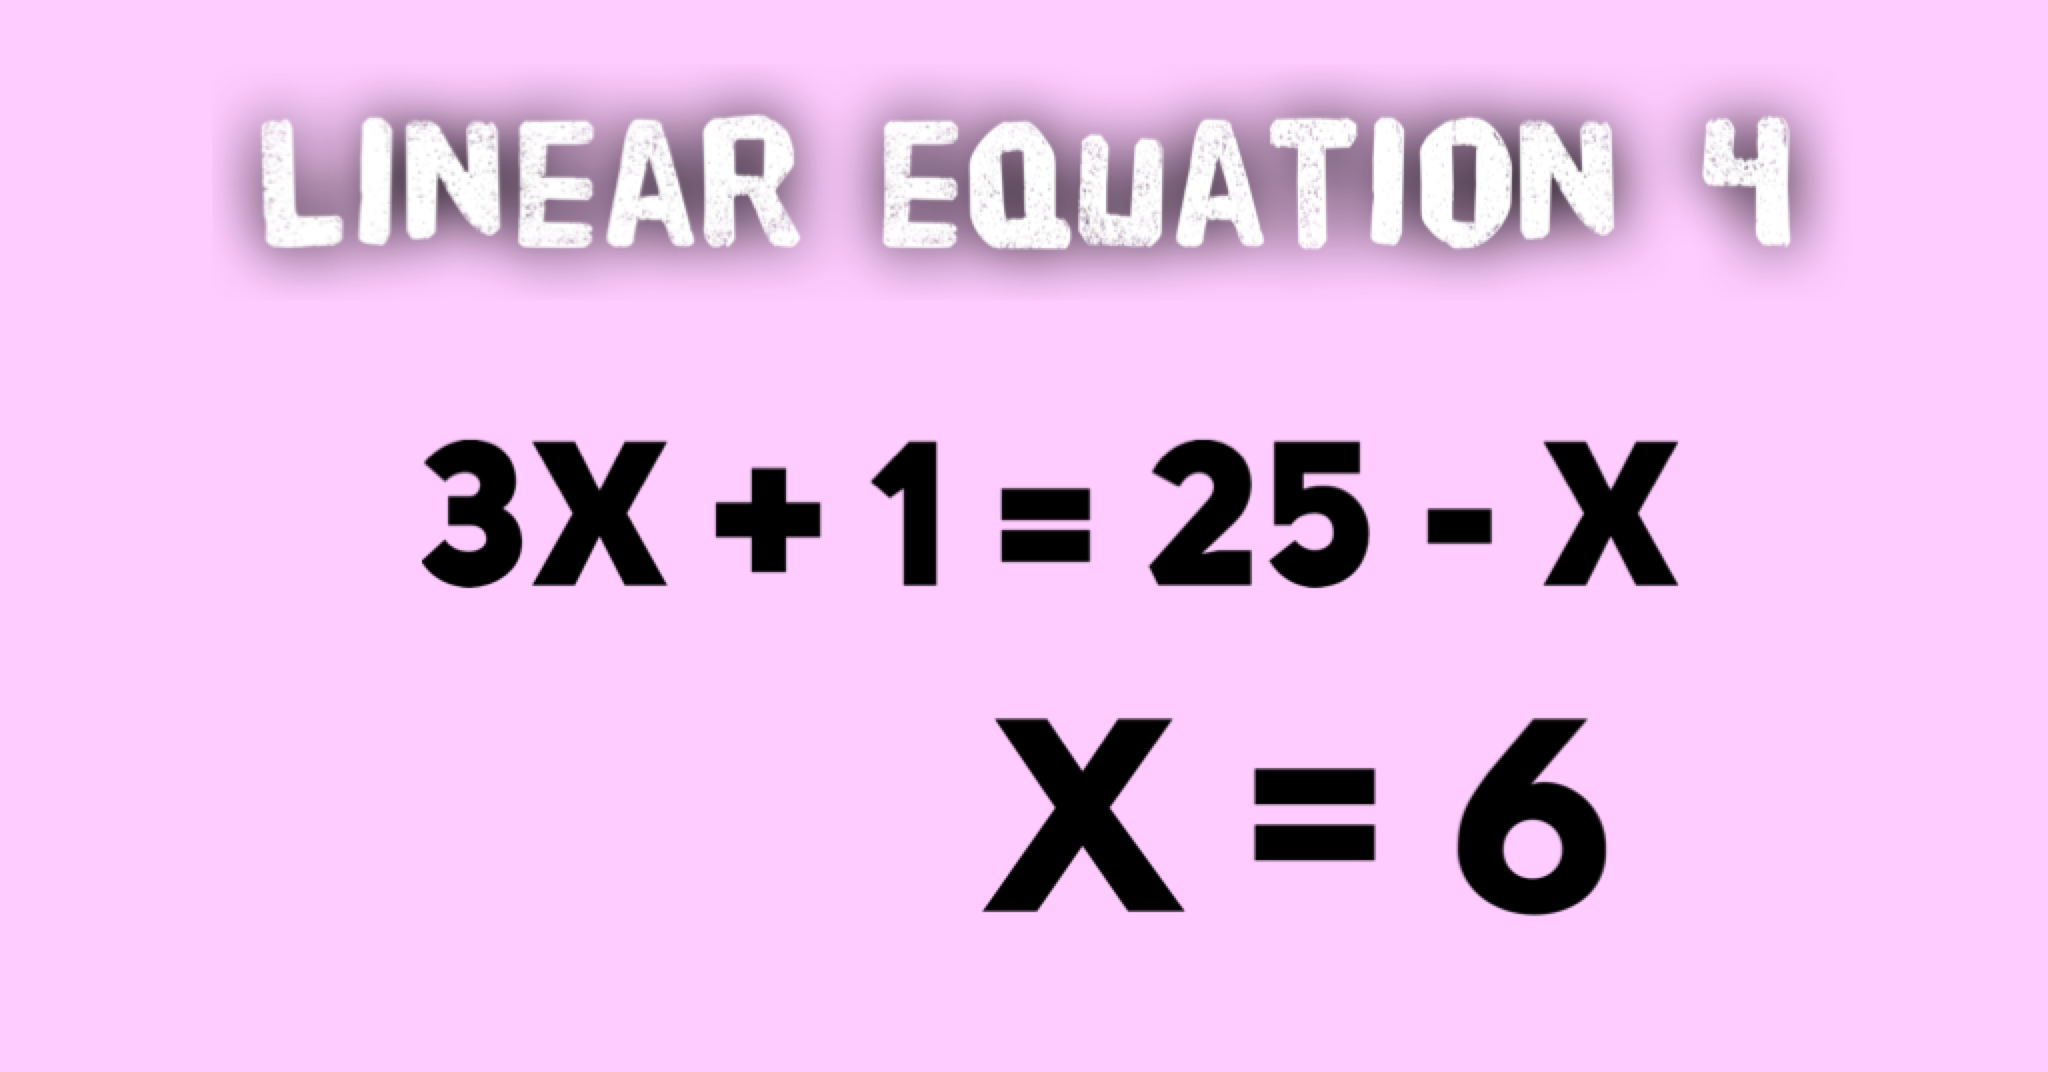 Linear Equations Example 4